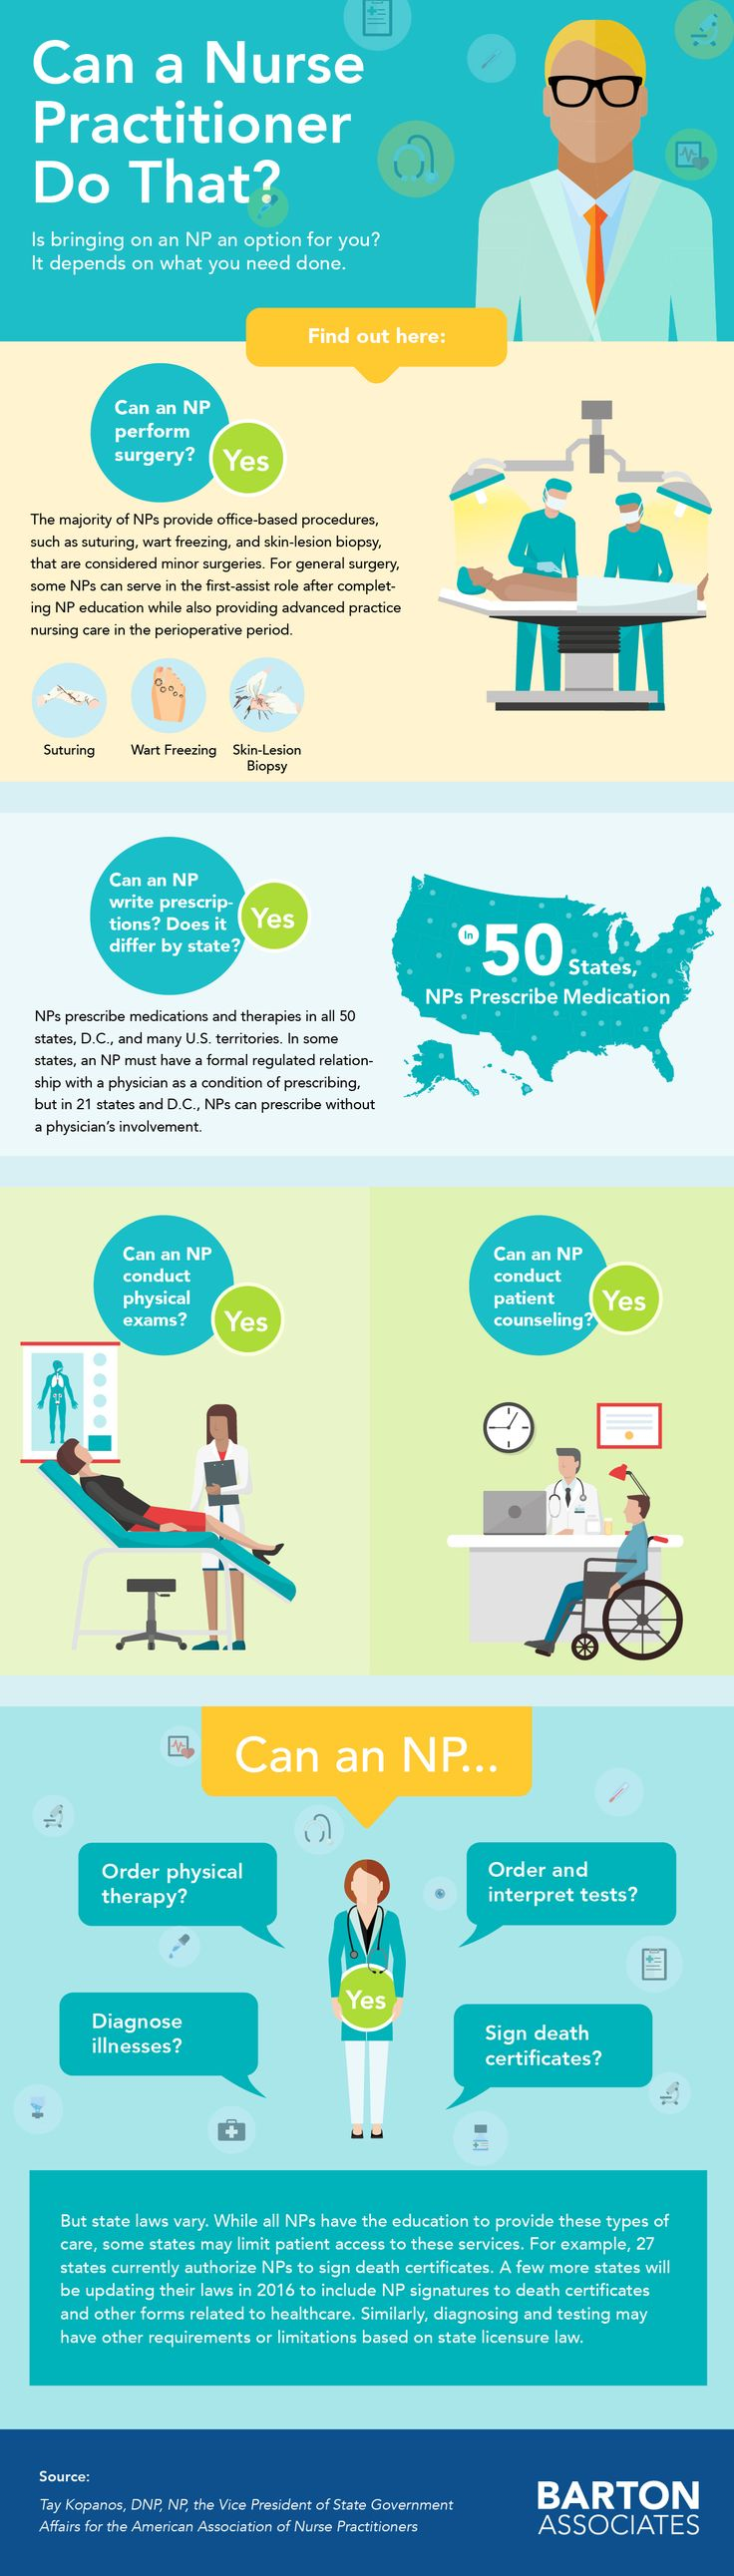 Can A Nurse Practitioner Do That? (INFOGRAPHIC) Think you need to hire a physician to fill an opening at your hospital, practice, or organization? Not necessarily: A nurse practitioner (NP) may be able to get the job done, says Tay Kopanos, DNP, NP